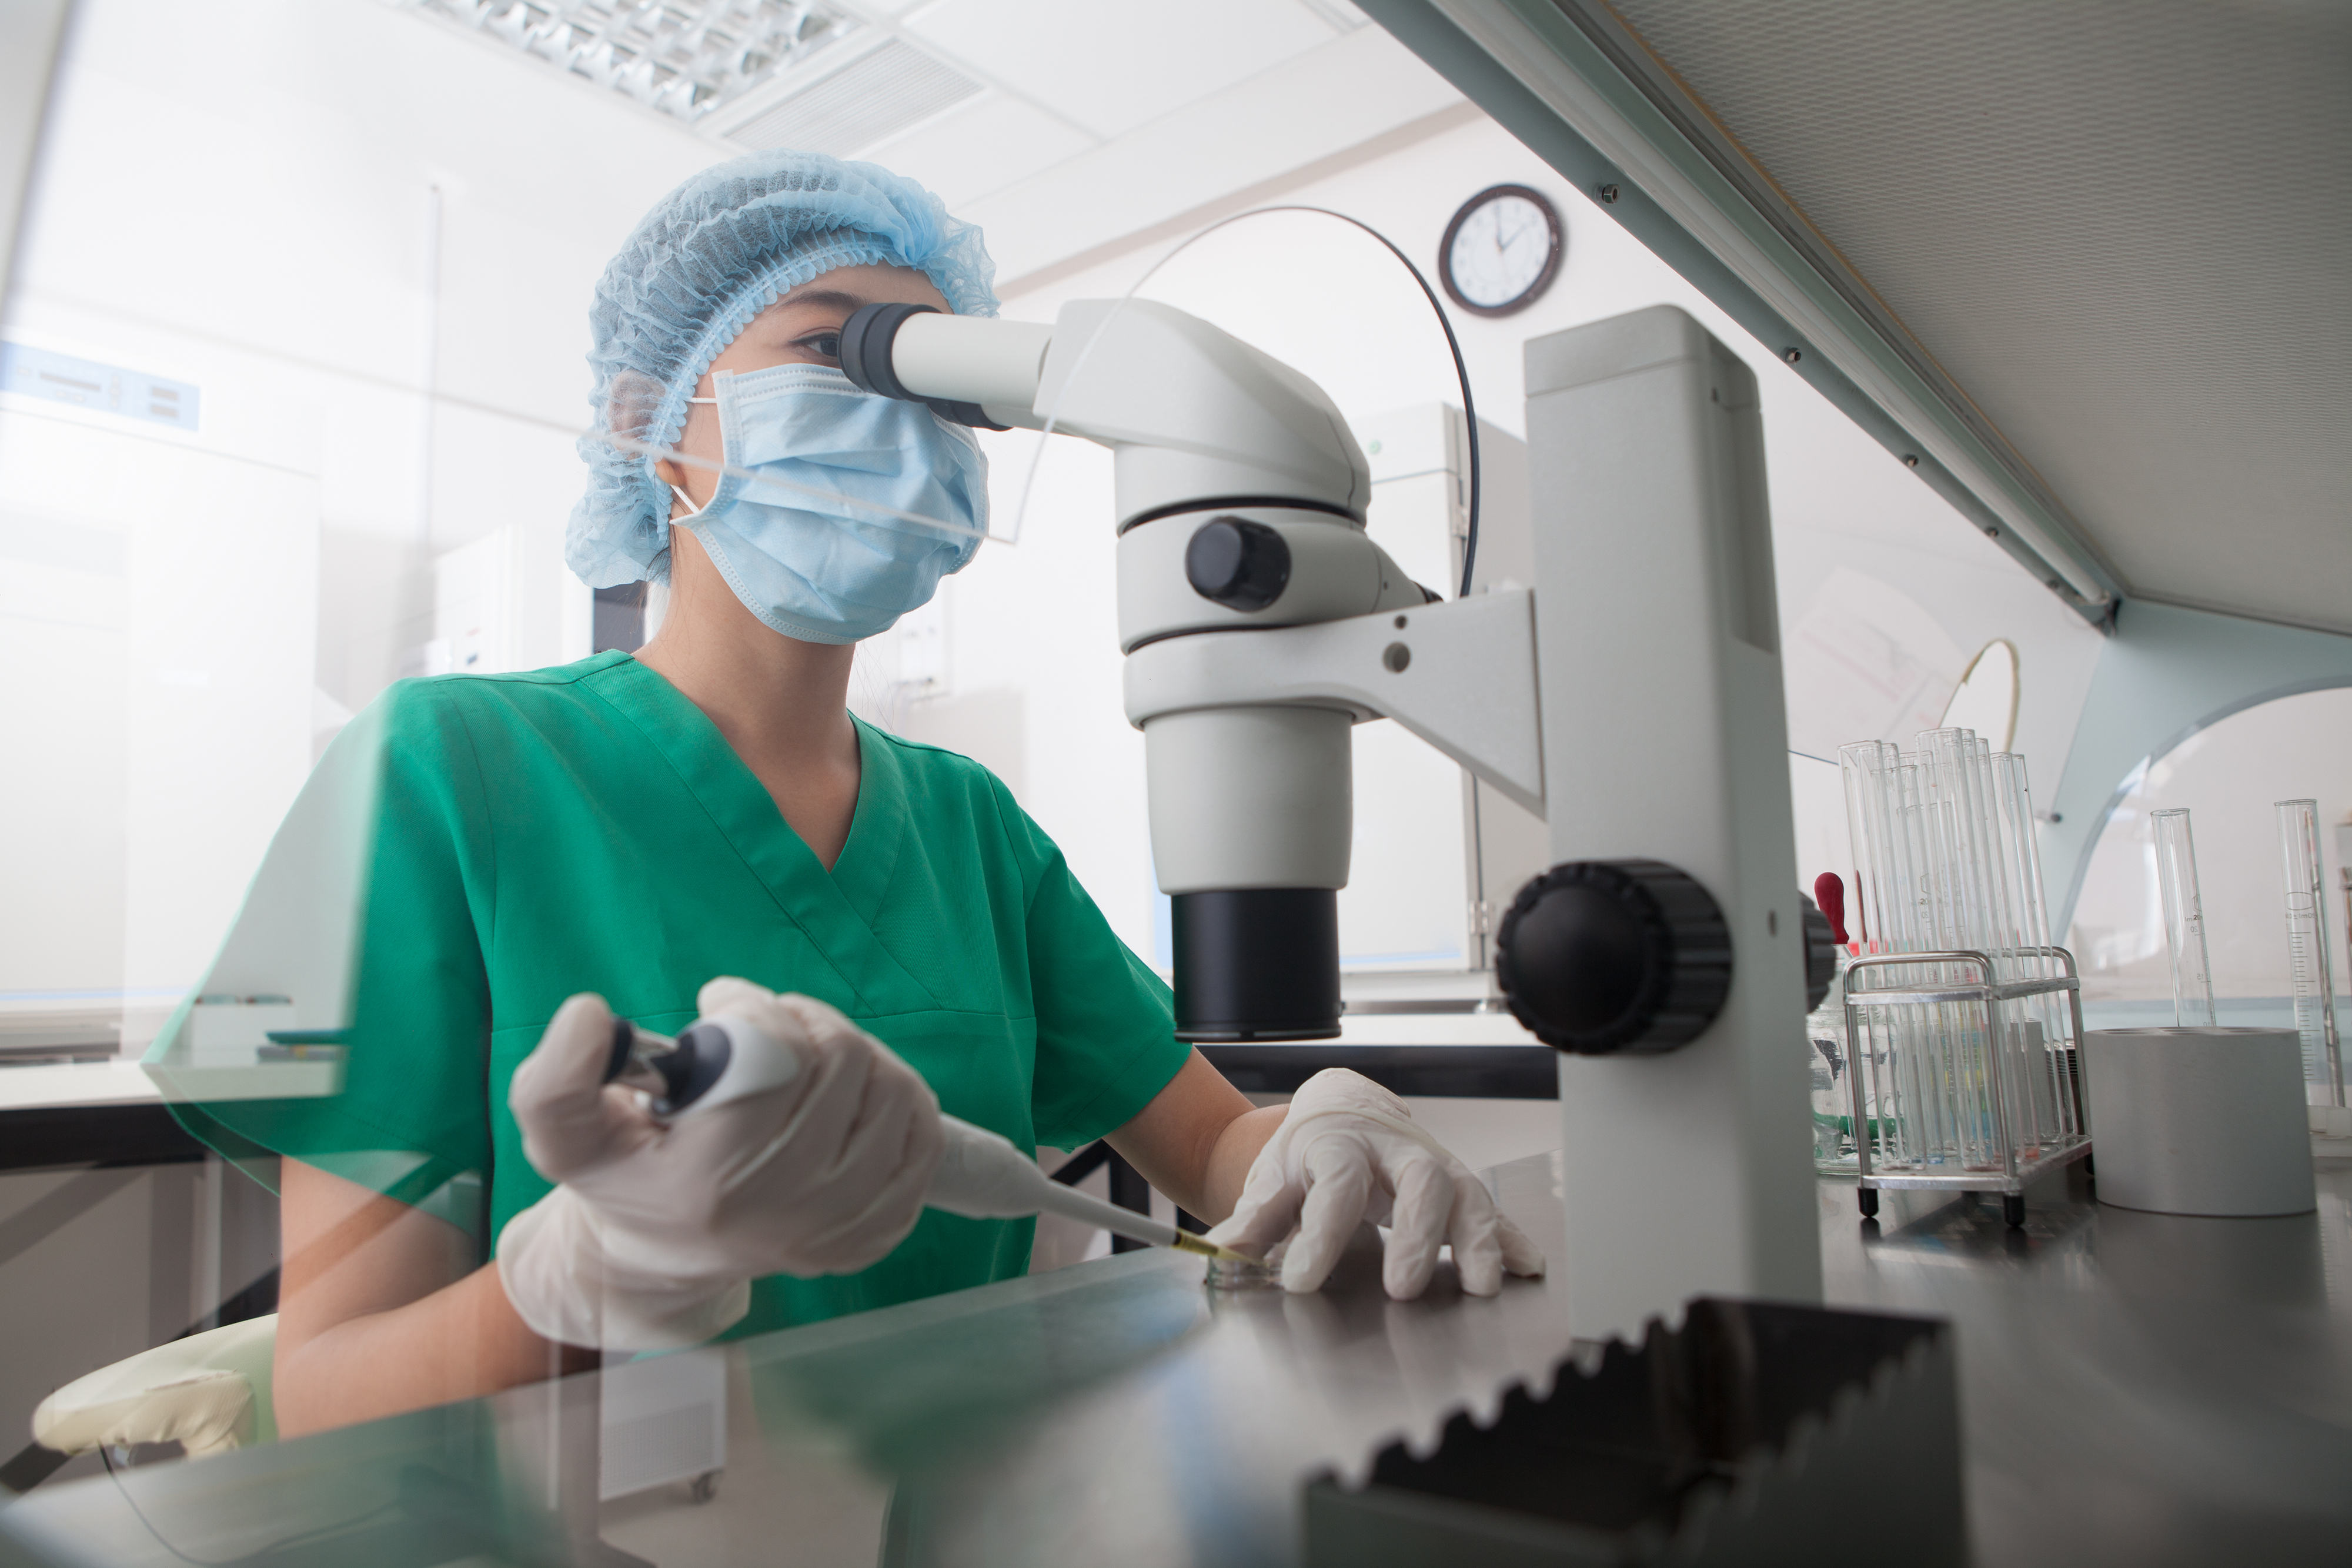 A woman looking through a microscope in a laboratory.